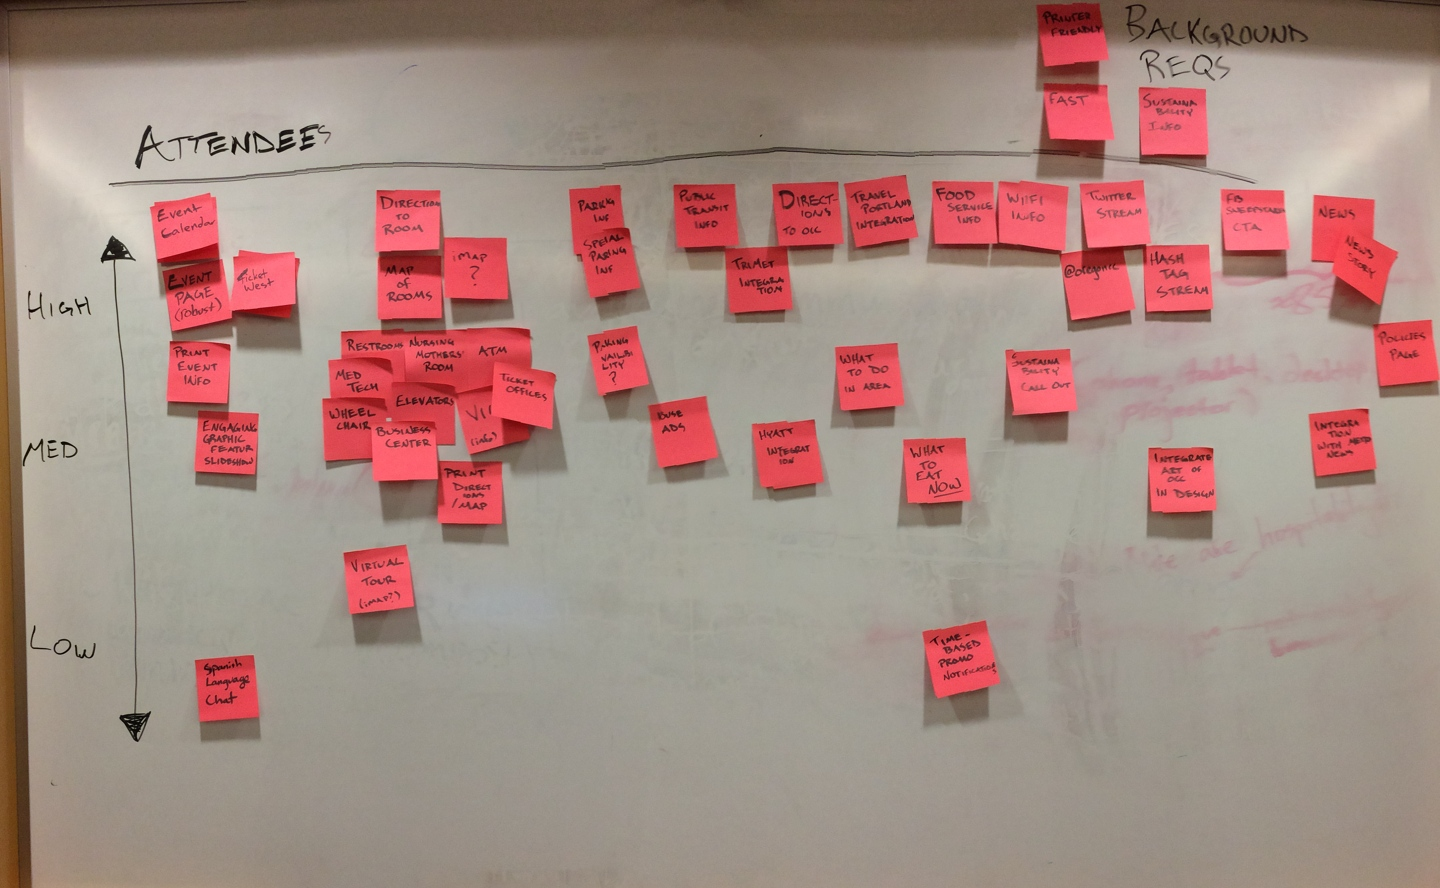 Photo: Whiteboard of feature brainstorming with sticky notes on a whiteboard